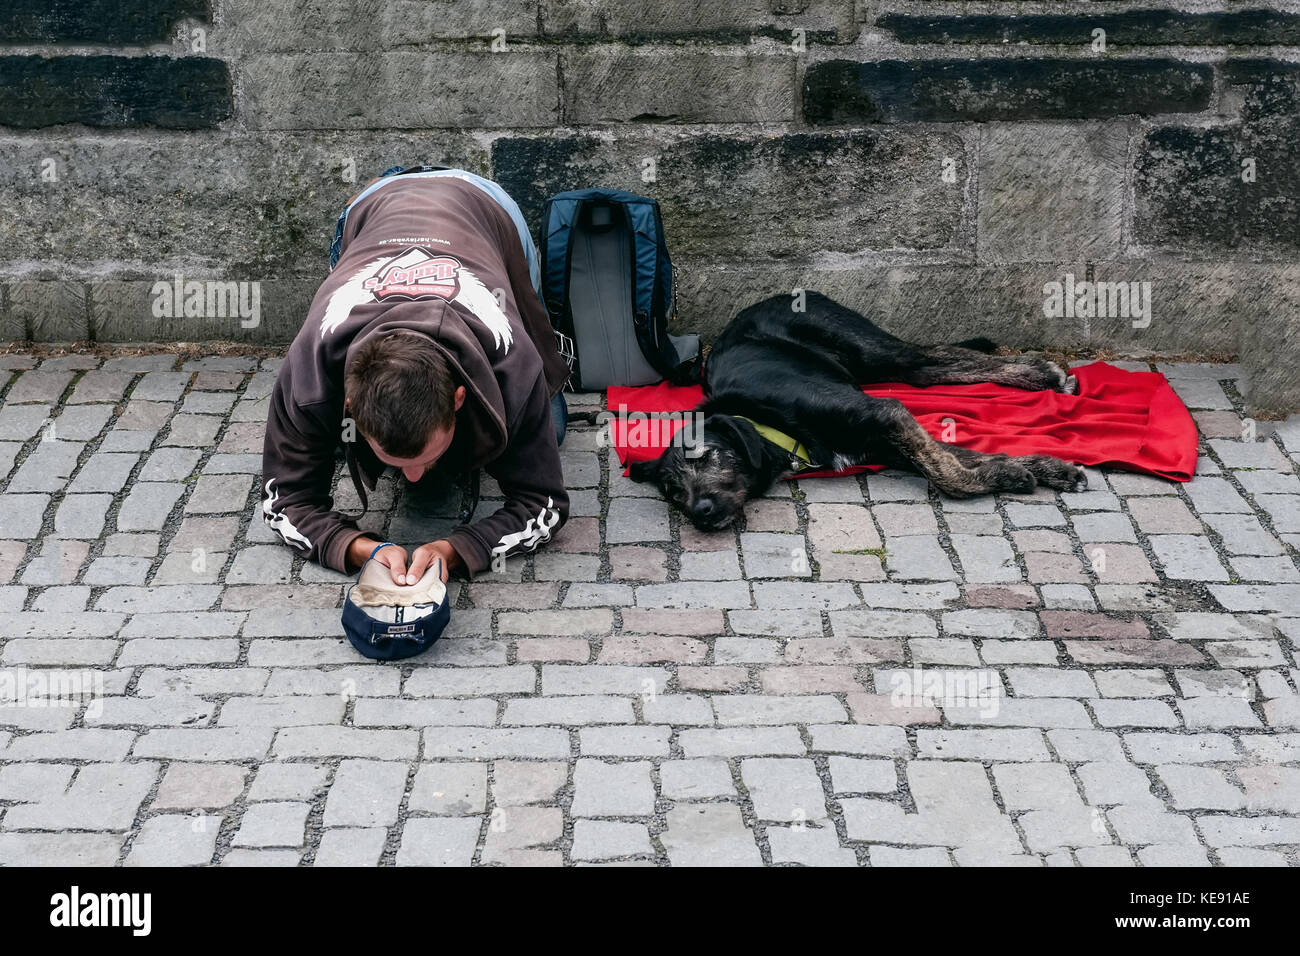 Prague 13.08.2013. A homeless young man with a big black dog on the street asking passersby for money. The horizontal - Stock Image